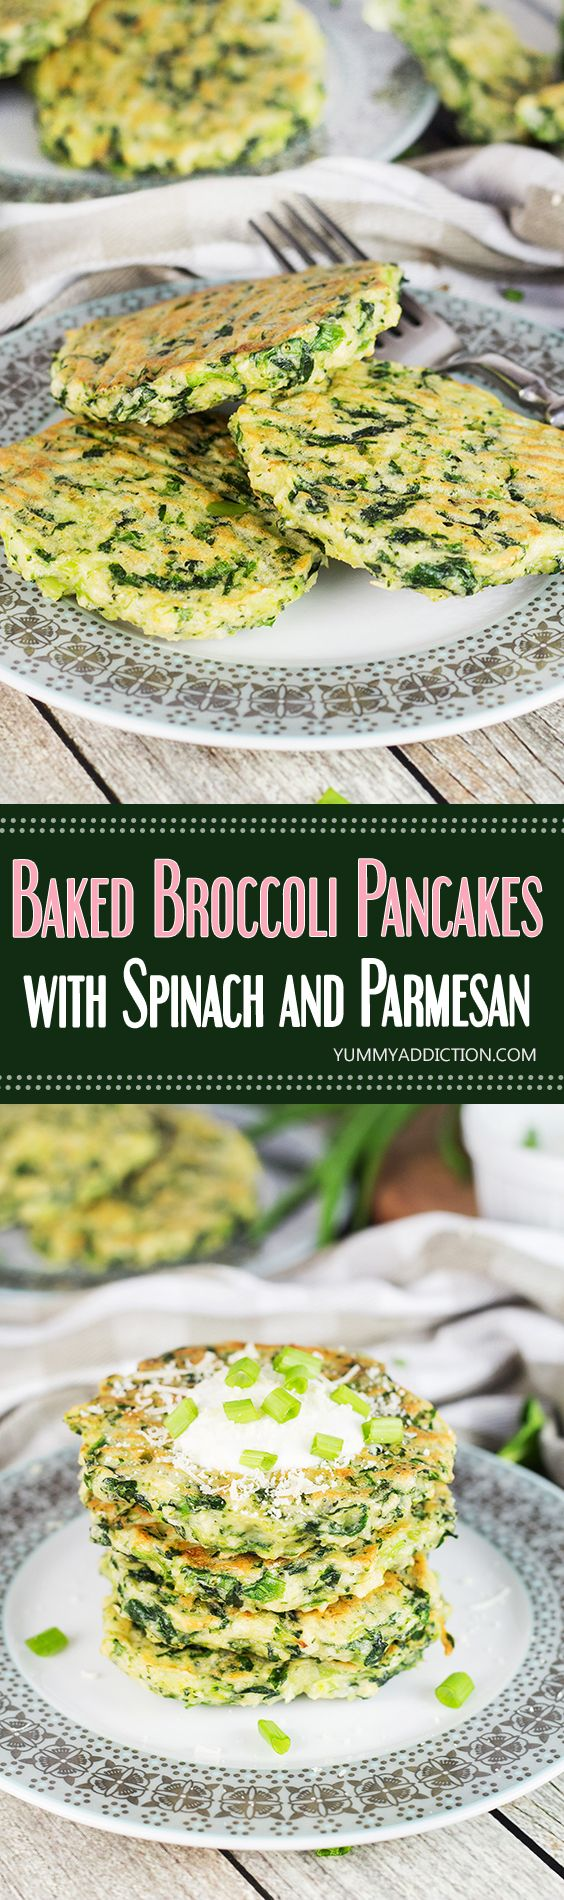 These spinach and Parmesan packed Broccoli Pancakes are so delicious that even those who are not too fond of this green veggie are going to love them! | yummyaddiction.com